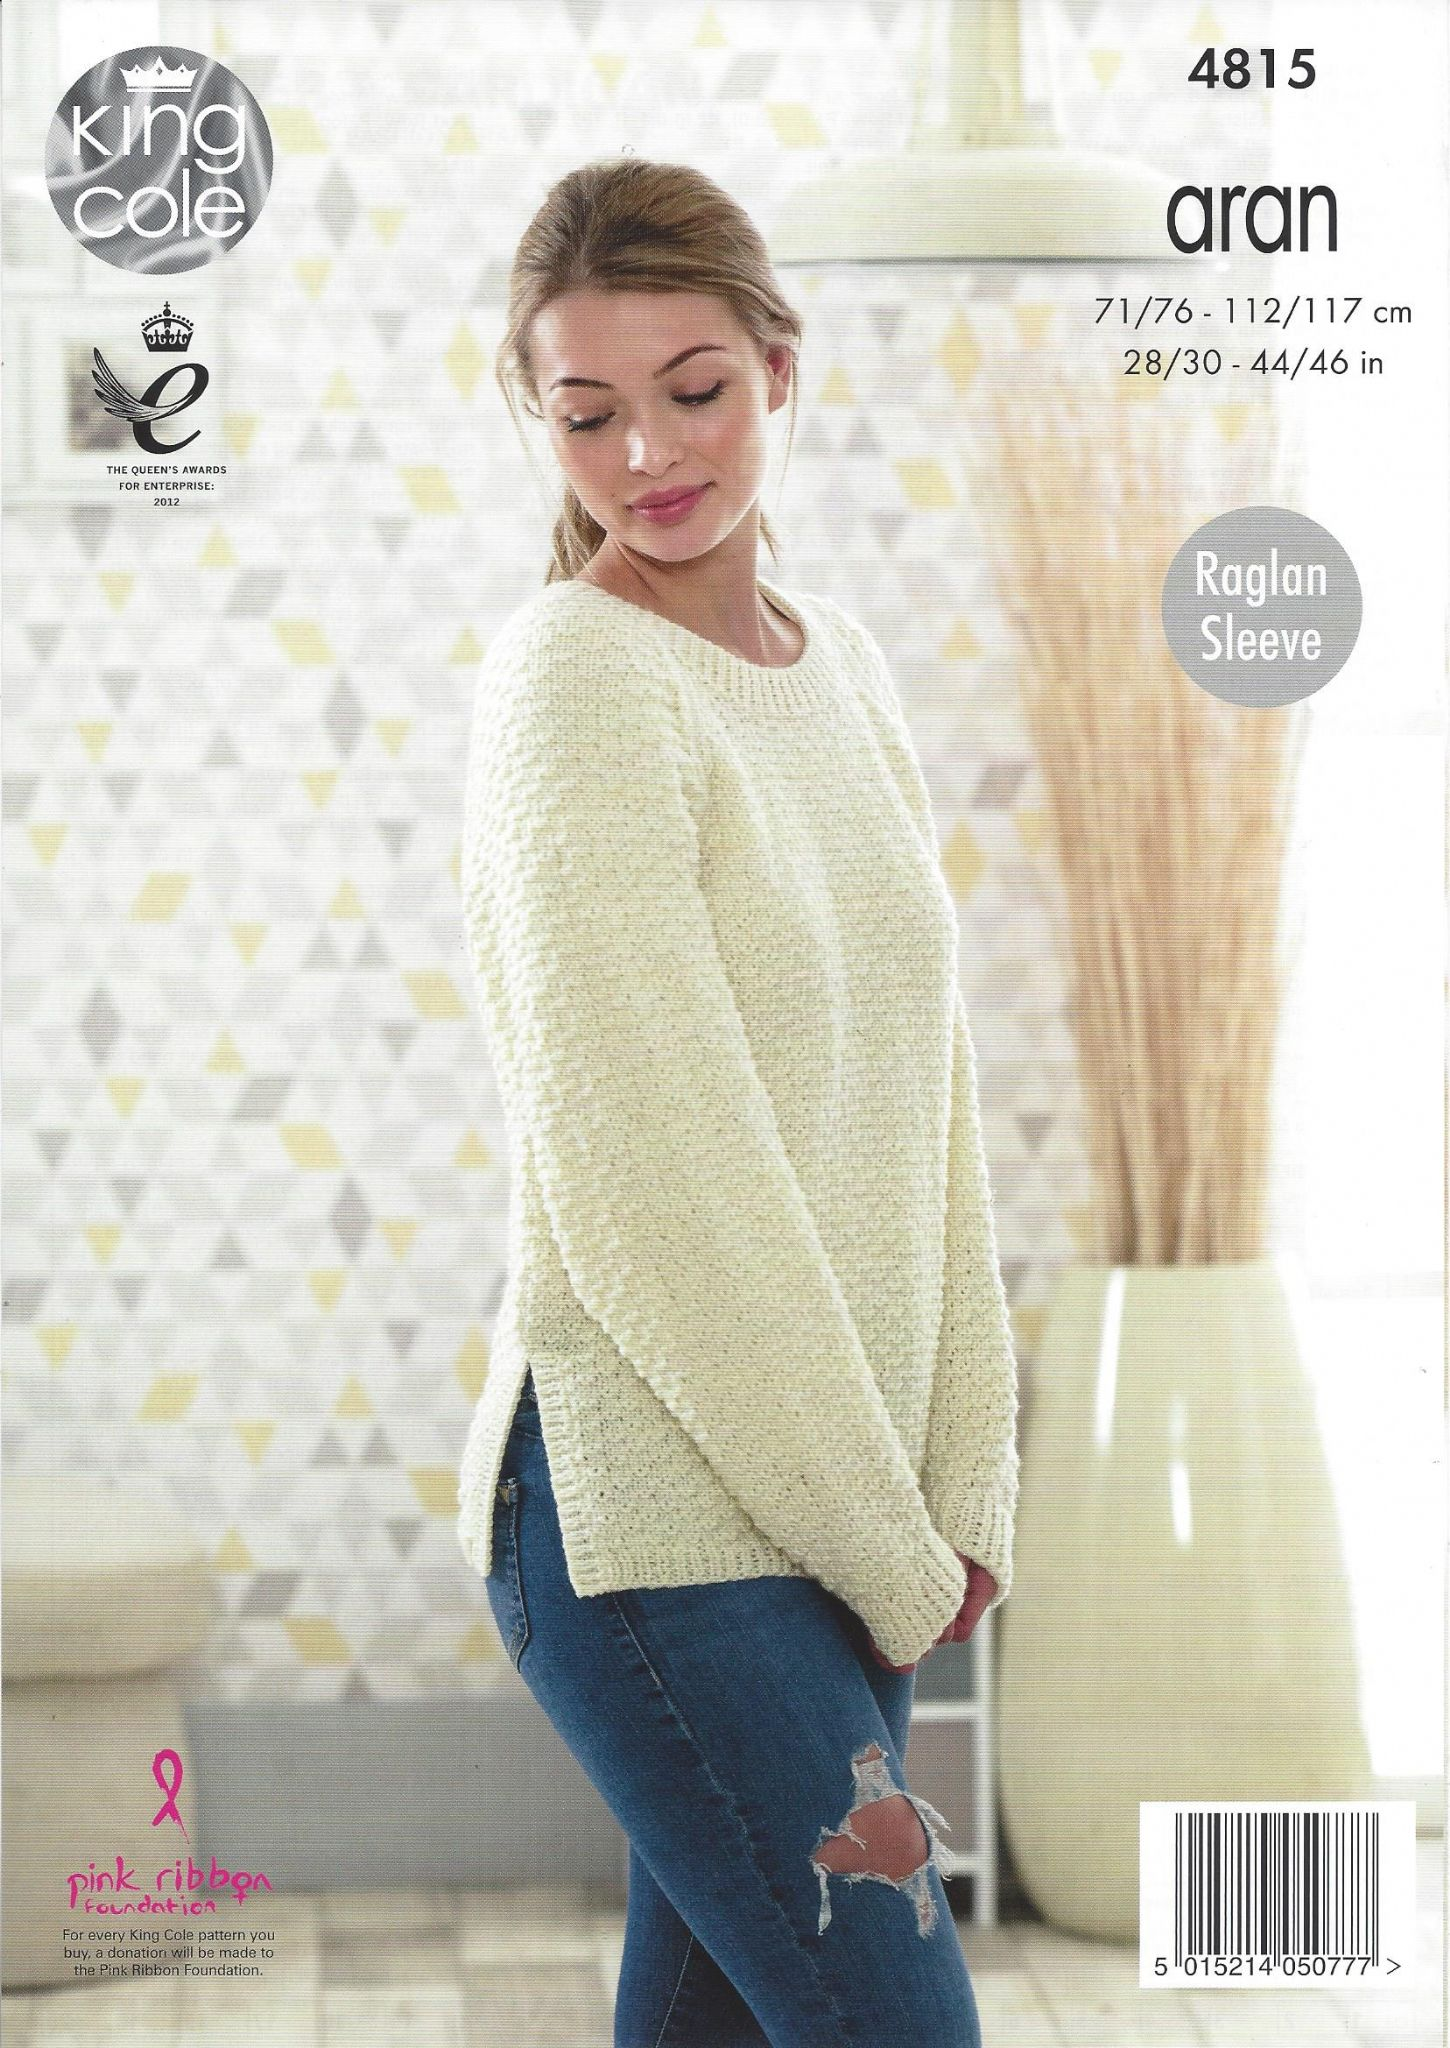 King Cole Aran Knitting Pattern - 4815 Sweater & Cardigan